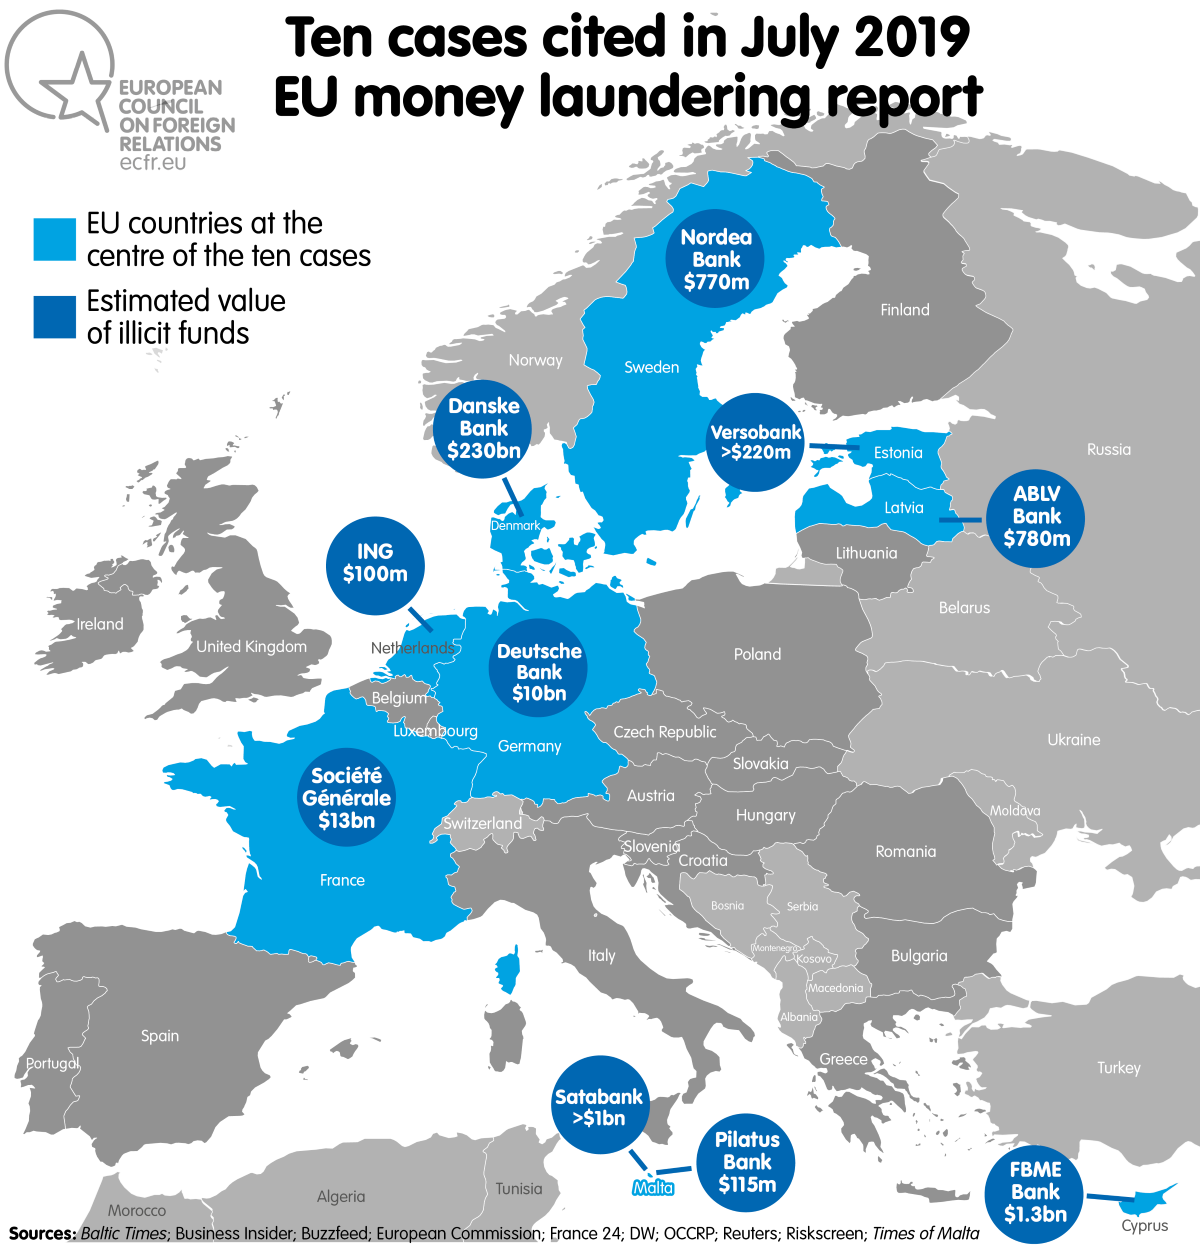 Map: Ten cases cited in July 2019 EU money laundering report